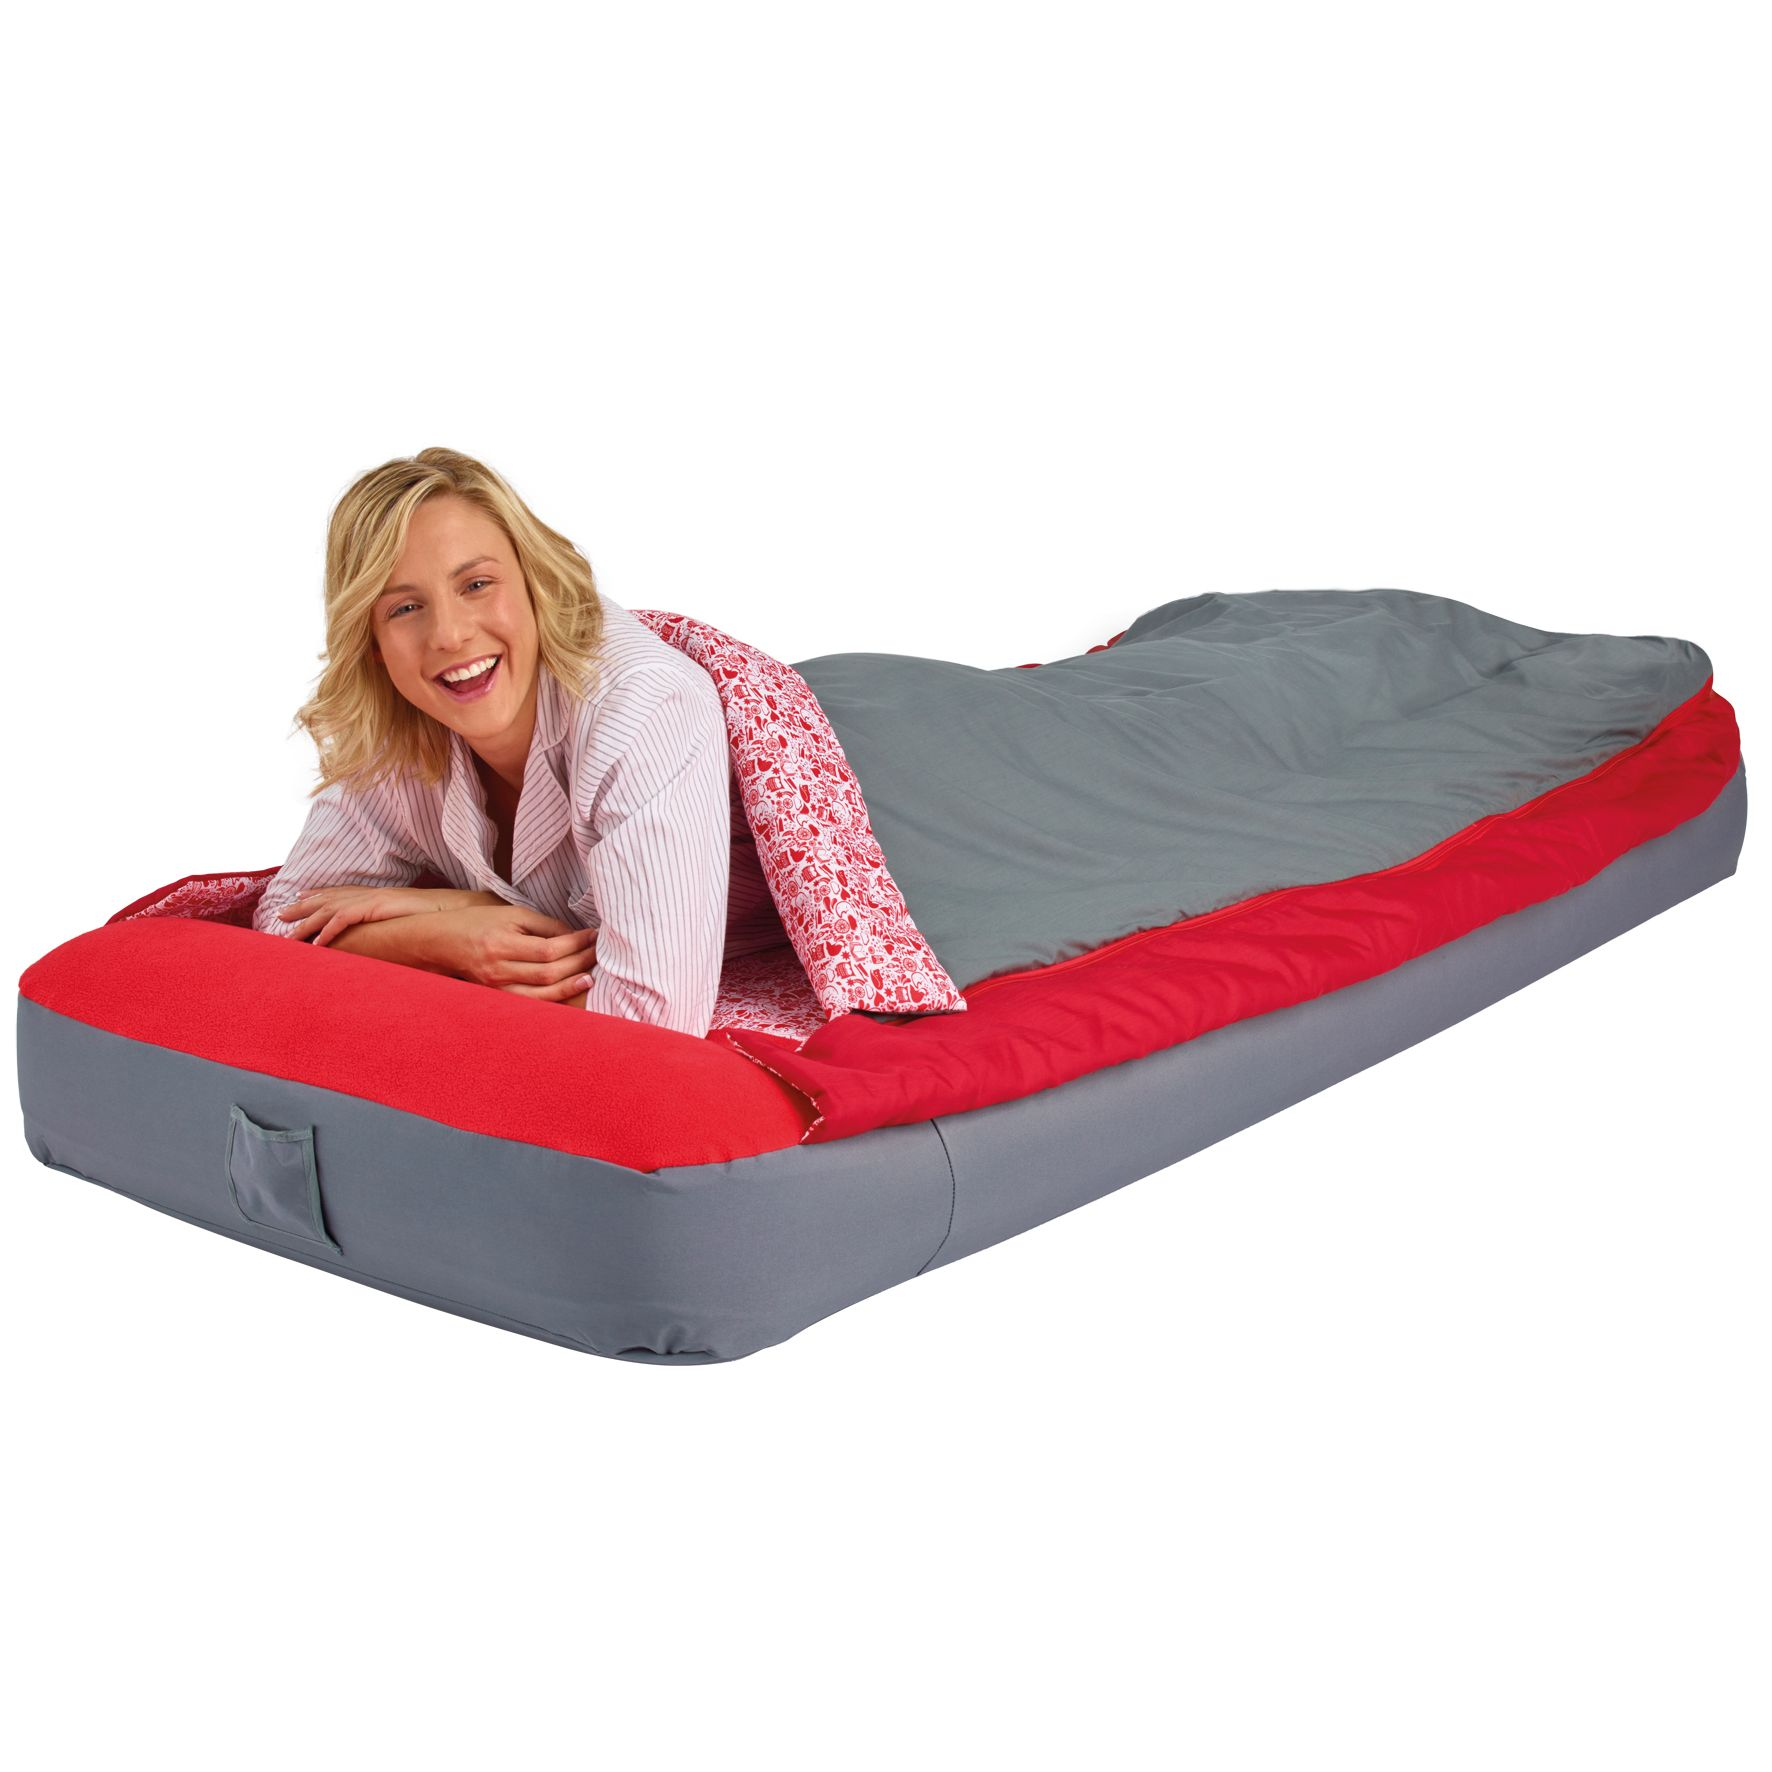 Epingle Sur Readybed Deluxe